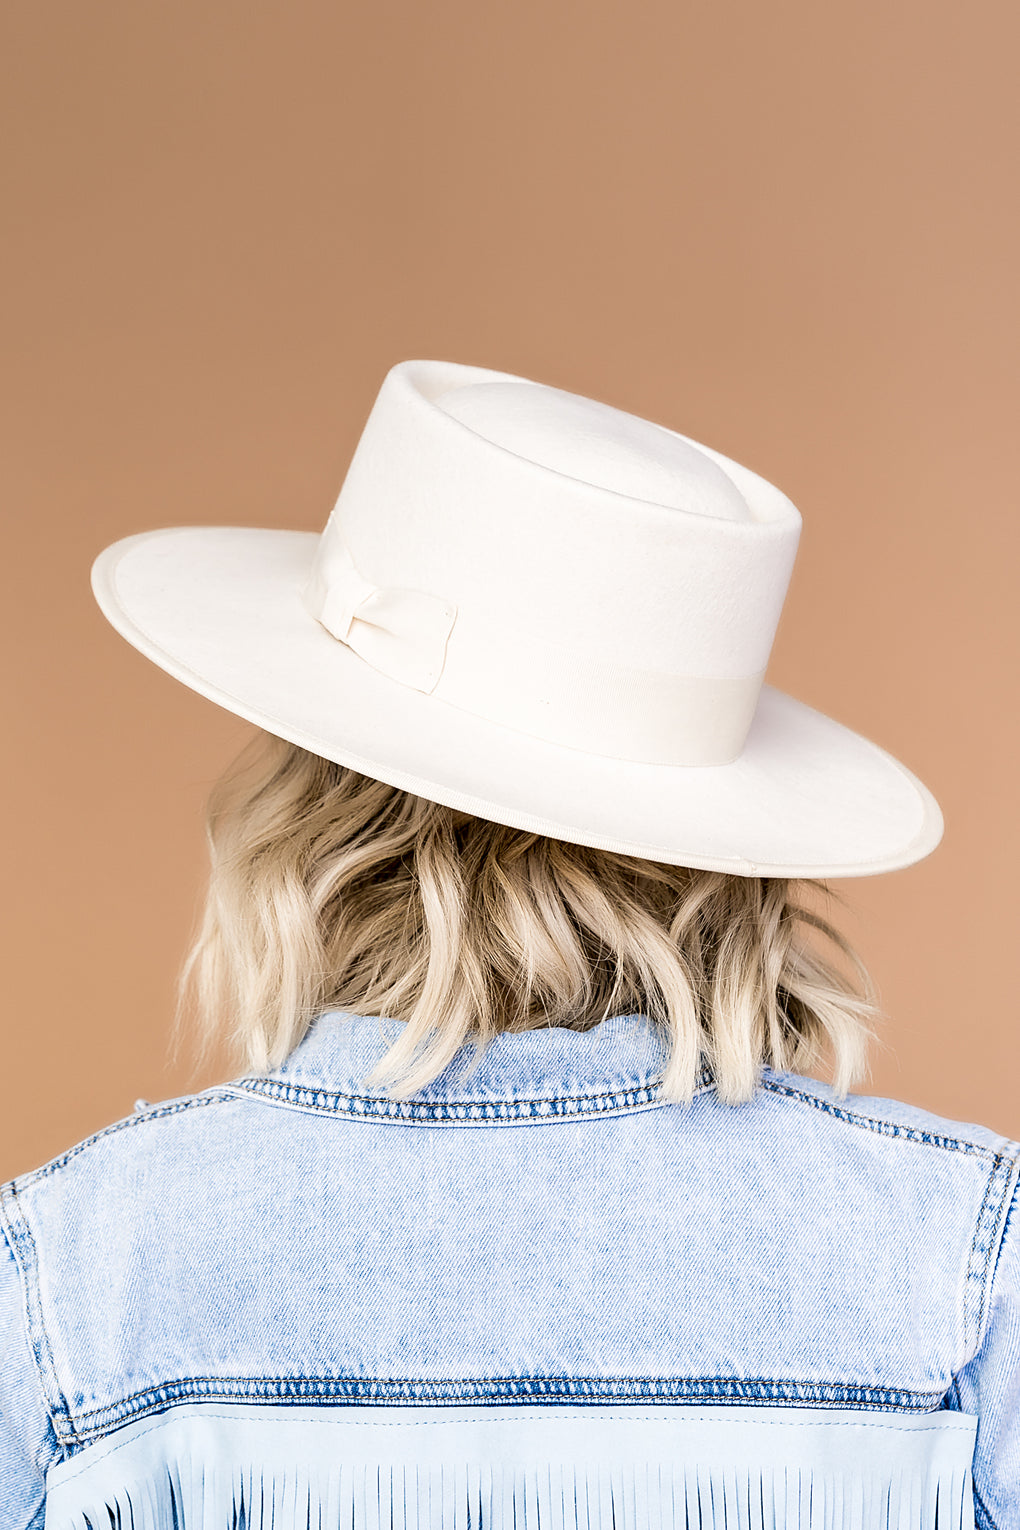 Lola Stiff Brim Hat in Cloud